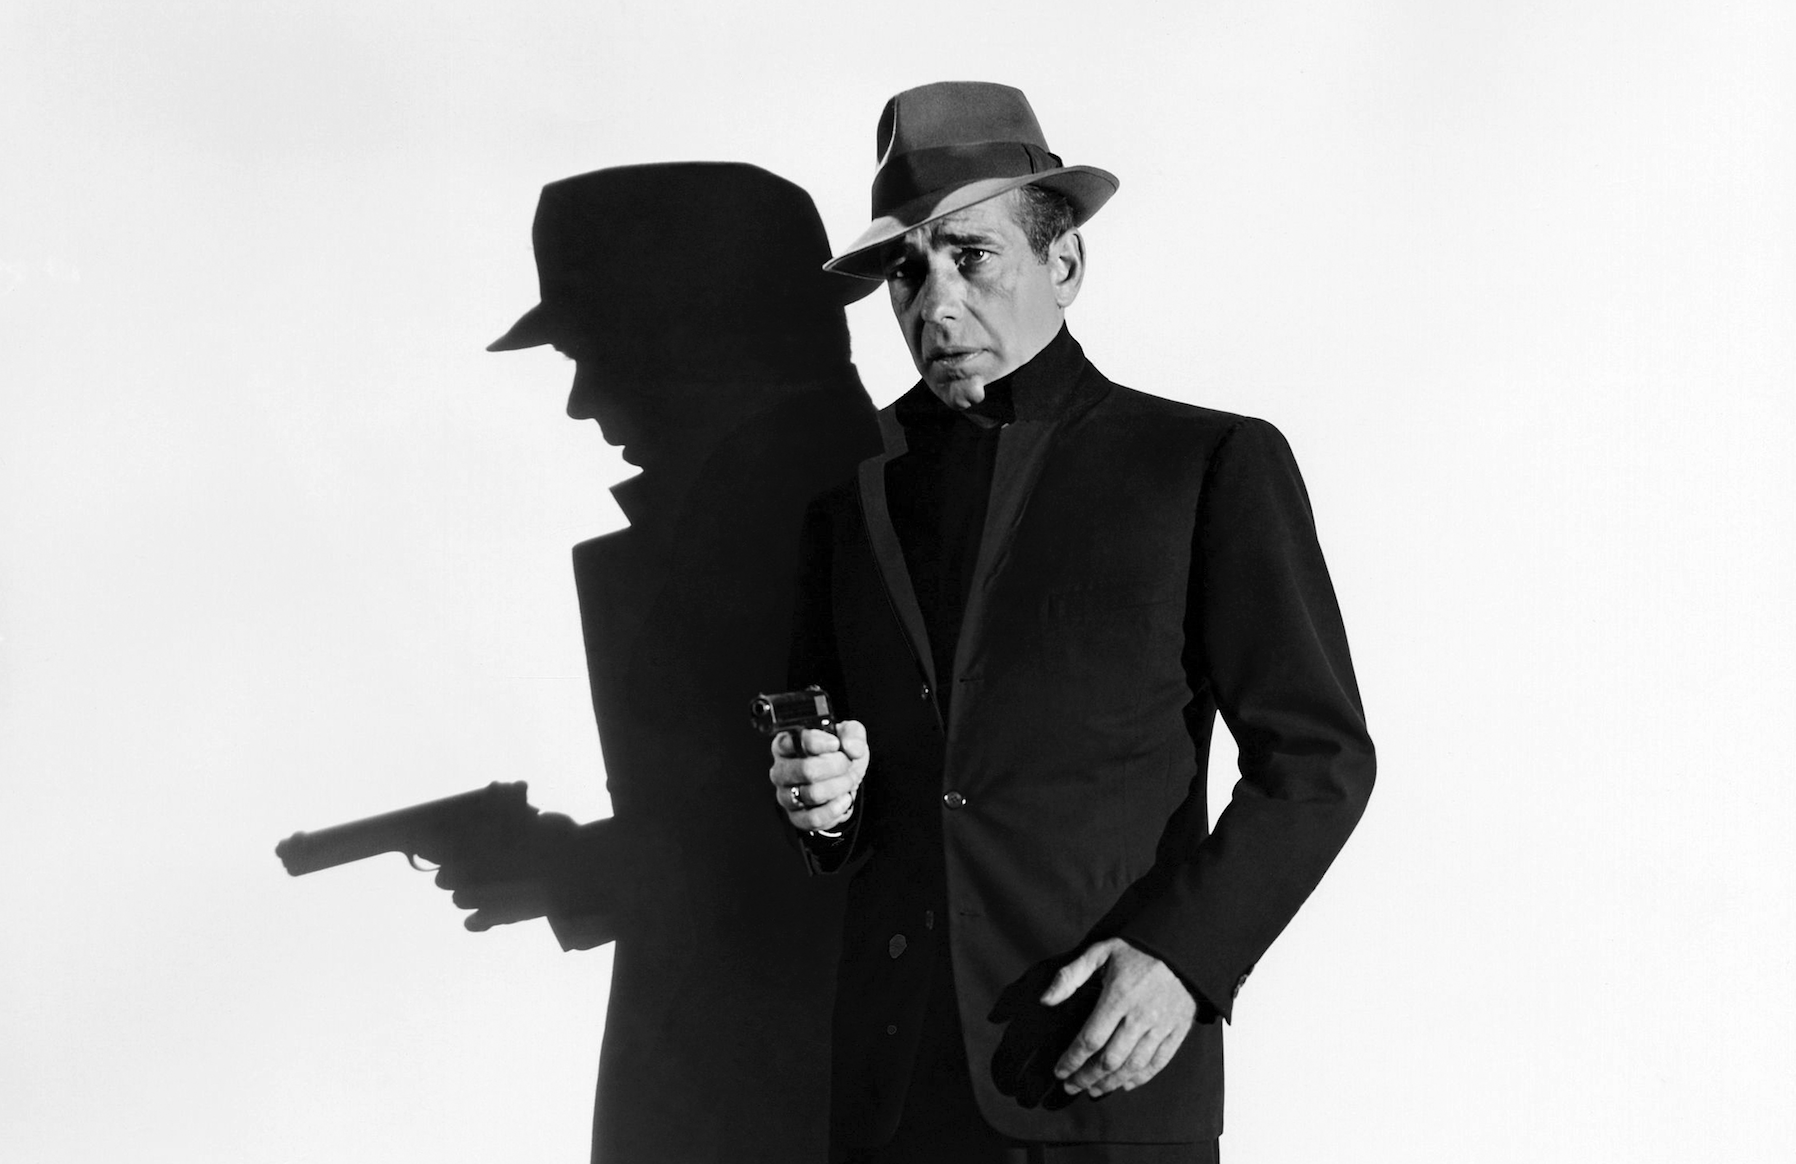 The 5 Humphrey Bogart Movies You Have To See - The Hot Corn